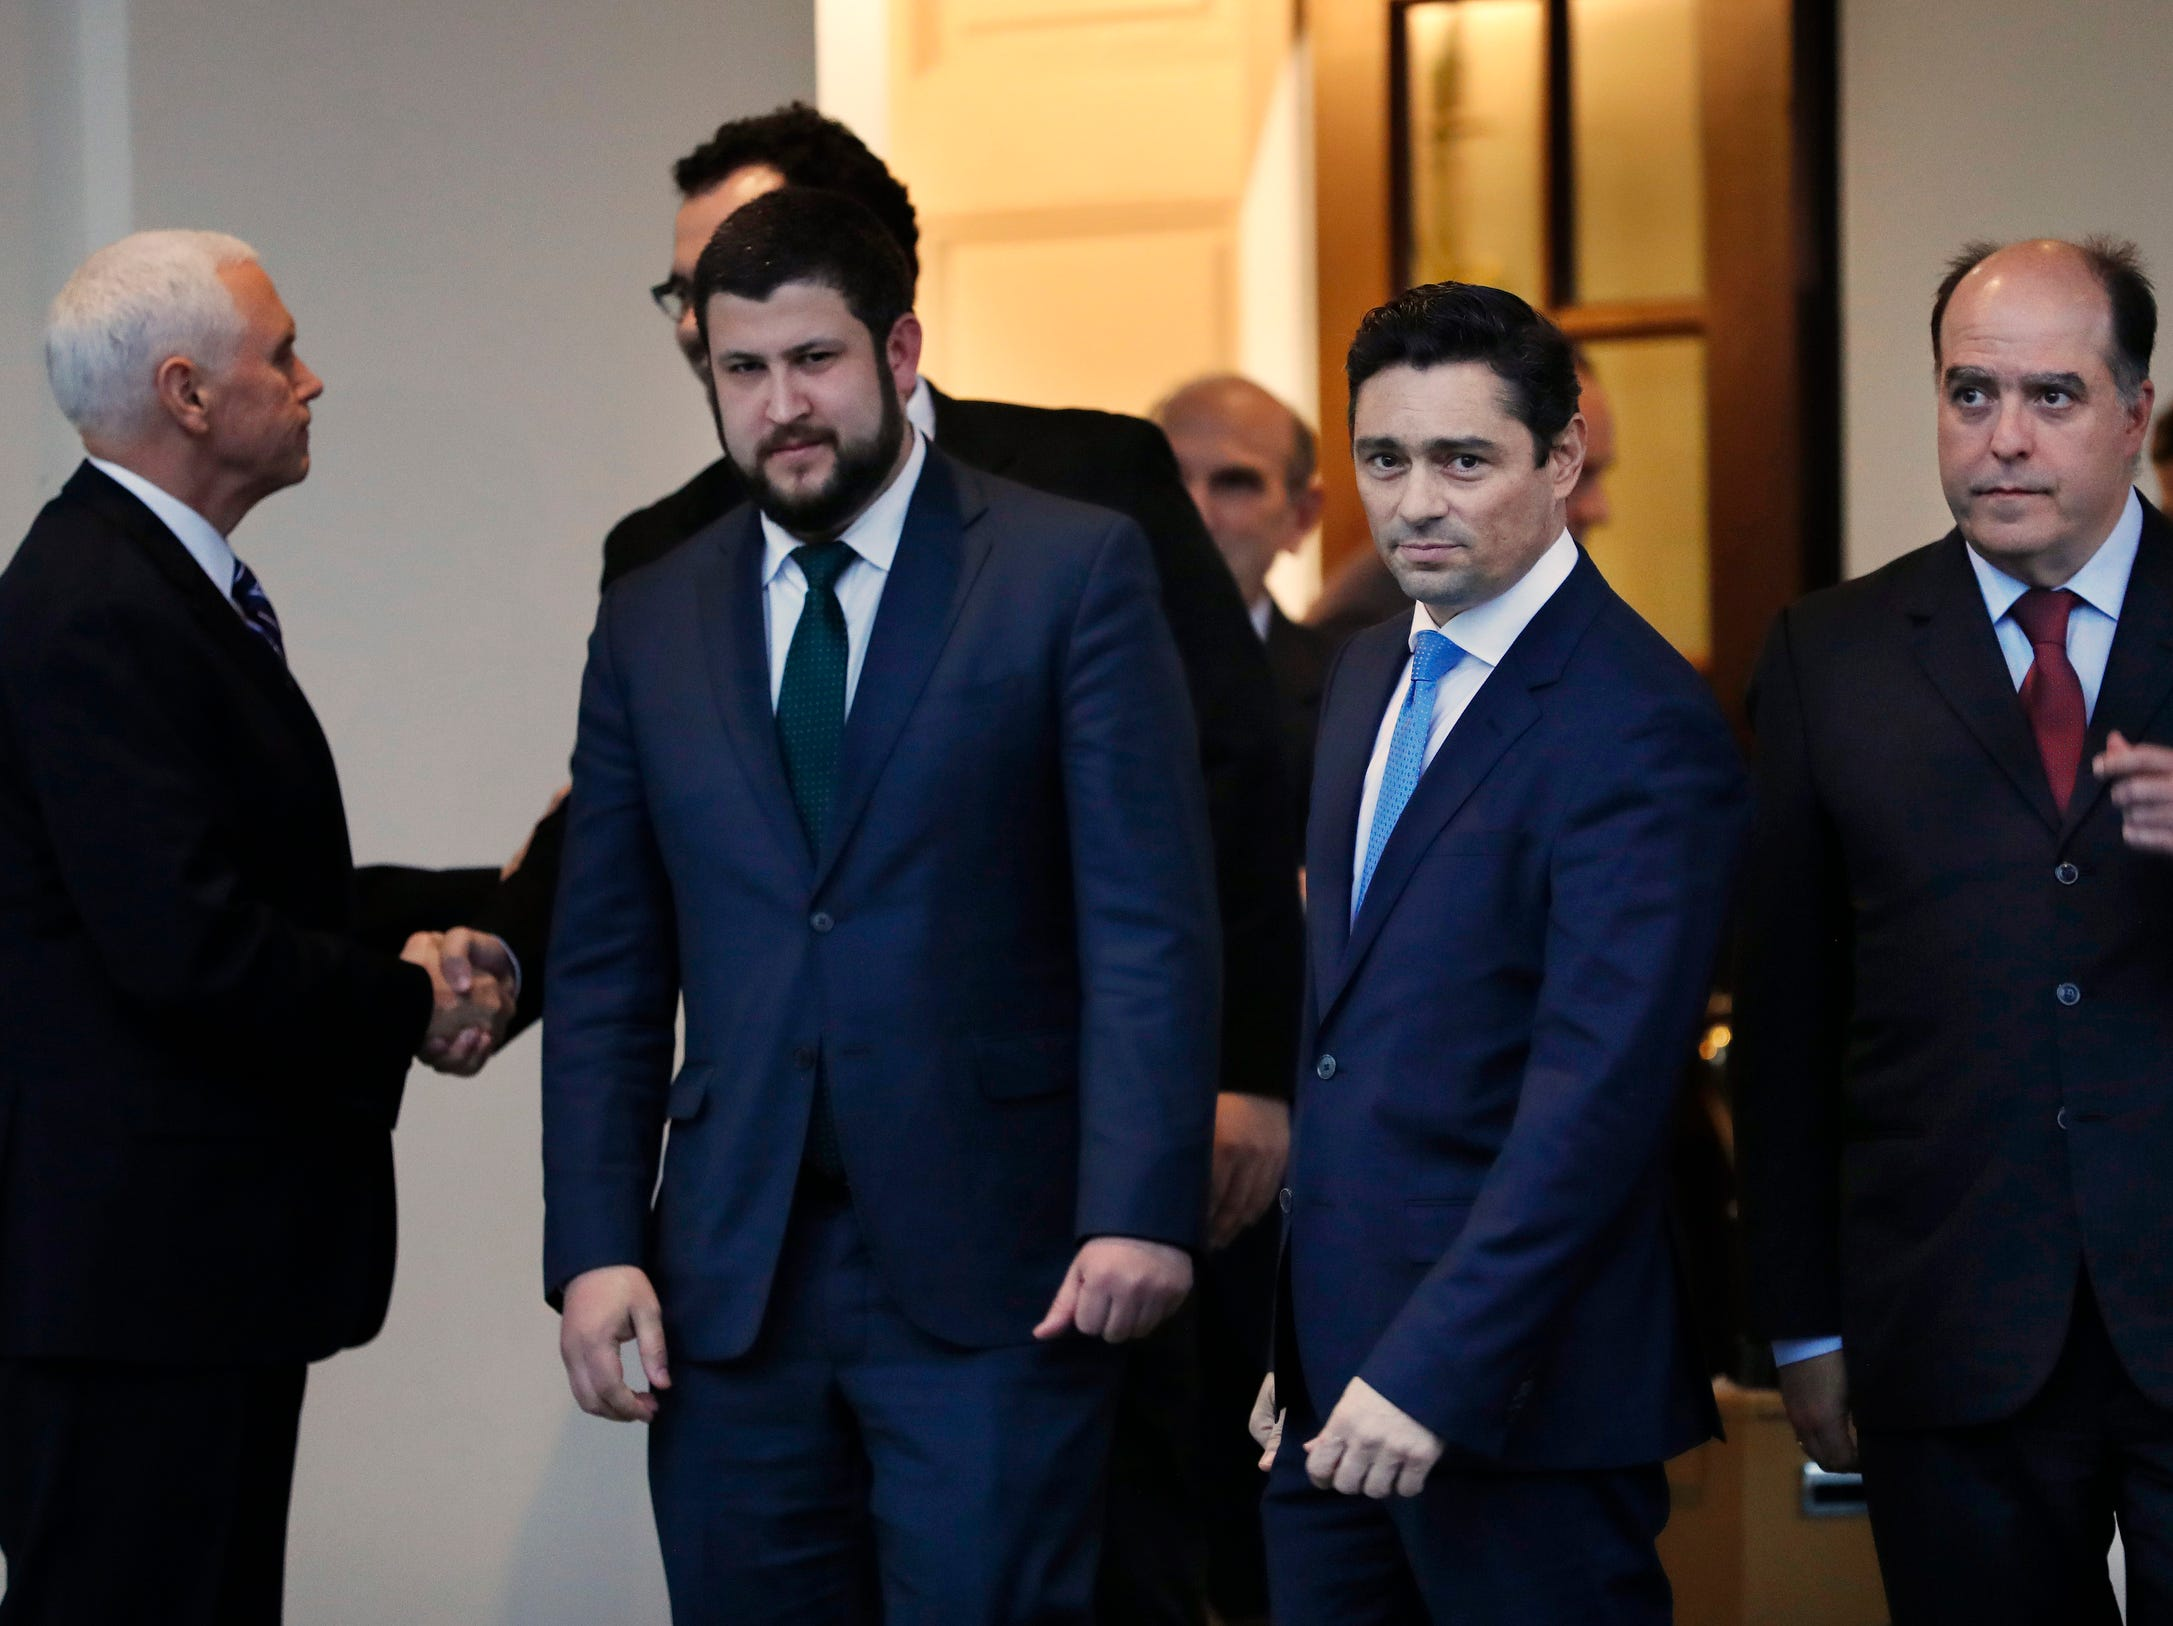 Vice President Mike Pence, left, shakes hands with Francisco Marquez, as Marquez and fellow Venezuelan opposition leaders David Smolansky, left, Carlos Vecchio, and Julio Borges, leave their meeting, Tuesday, at the White House in Washington, DC.